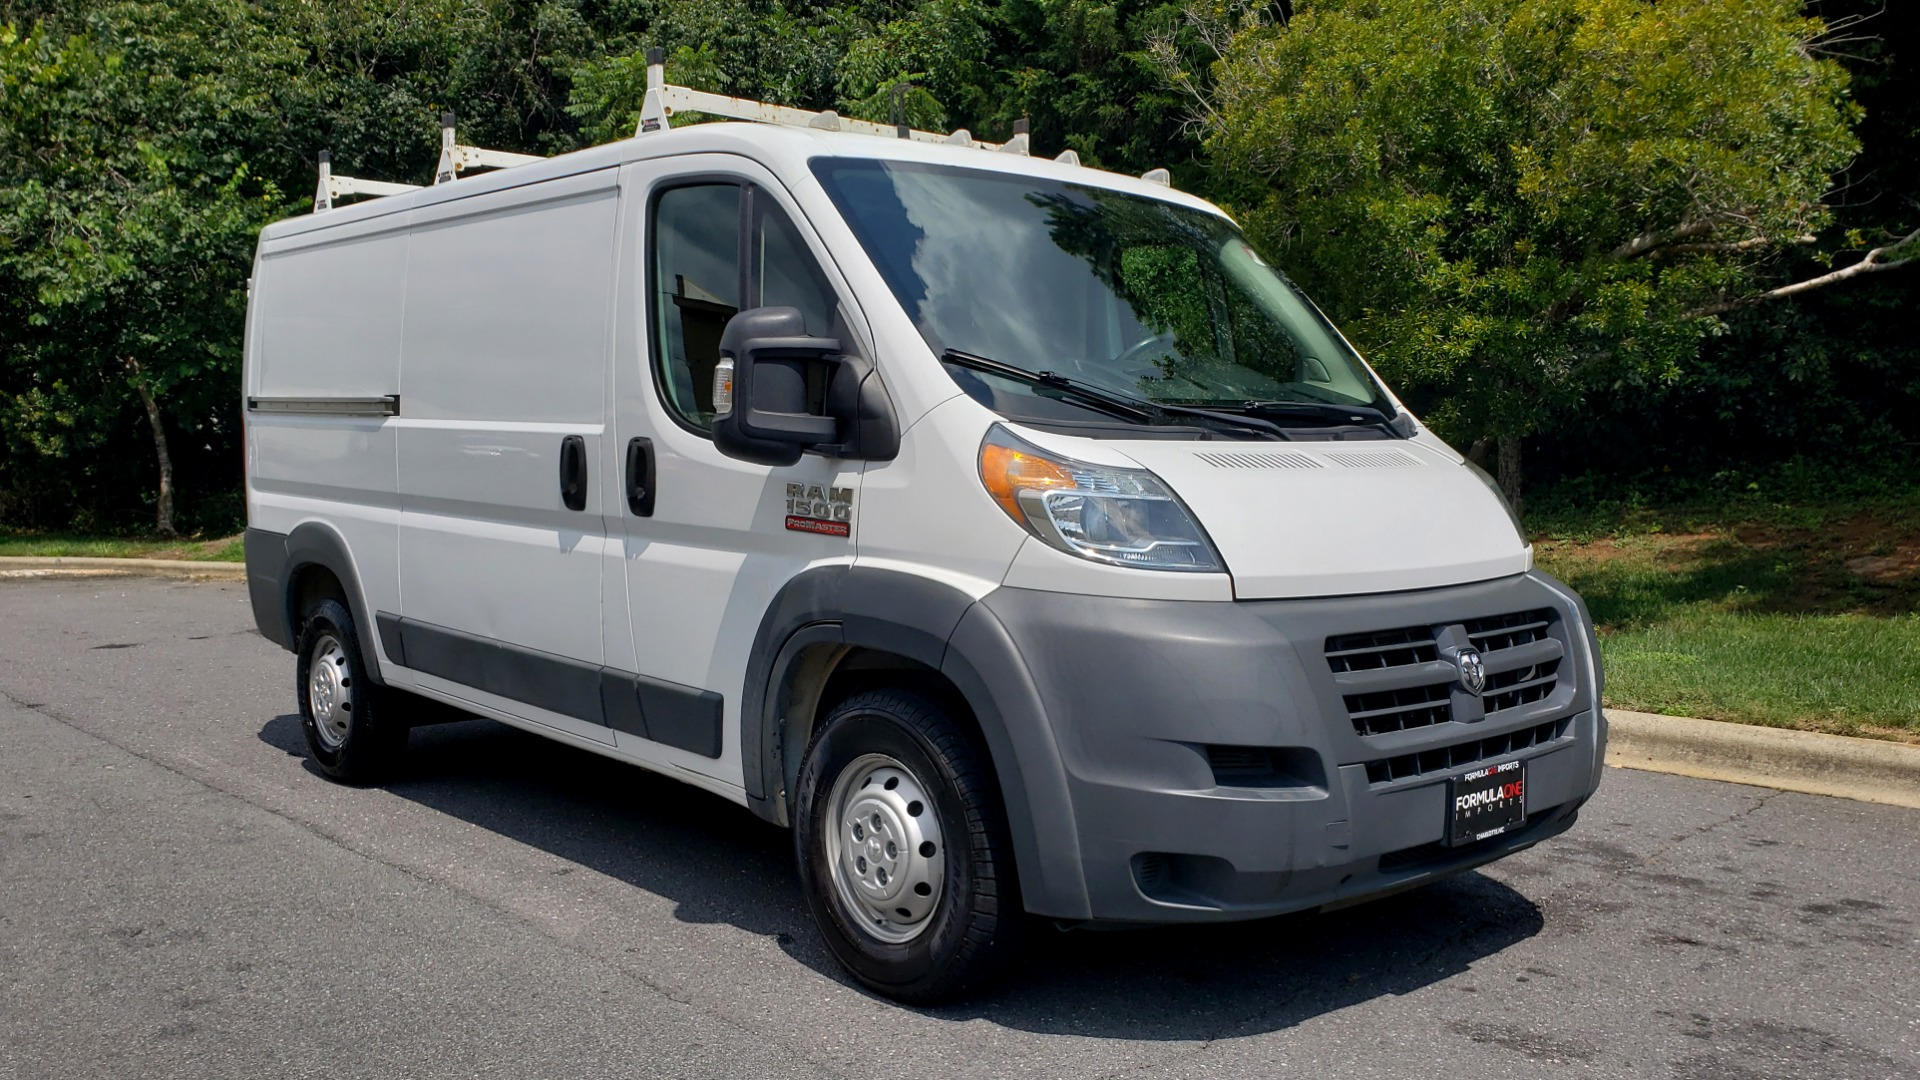 Used 2015 Ram PROMASTER CARGO VAN 1500 / LOW ROOF / 136IN WB / ROOF RACK / 1-OWNER for sale Sold at Formula Imports in Charlotte NC 28227 7